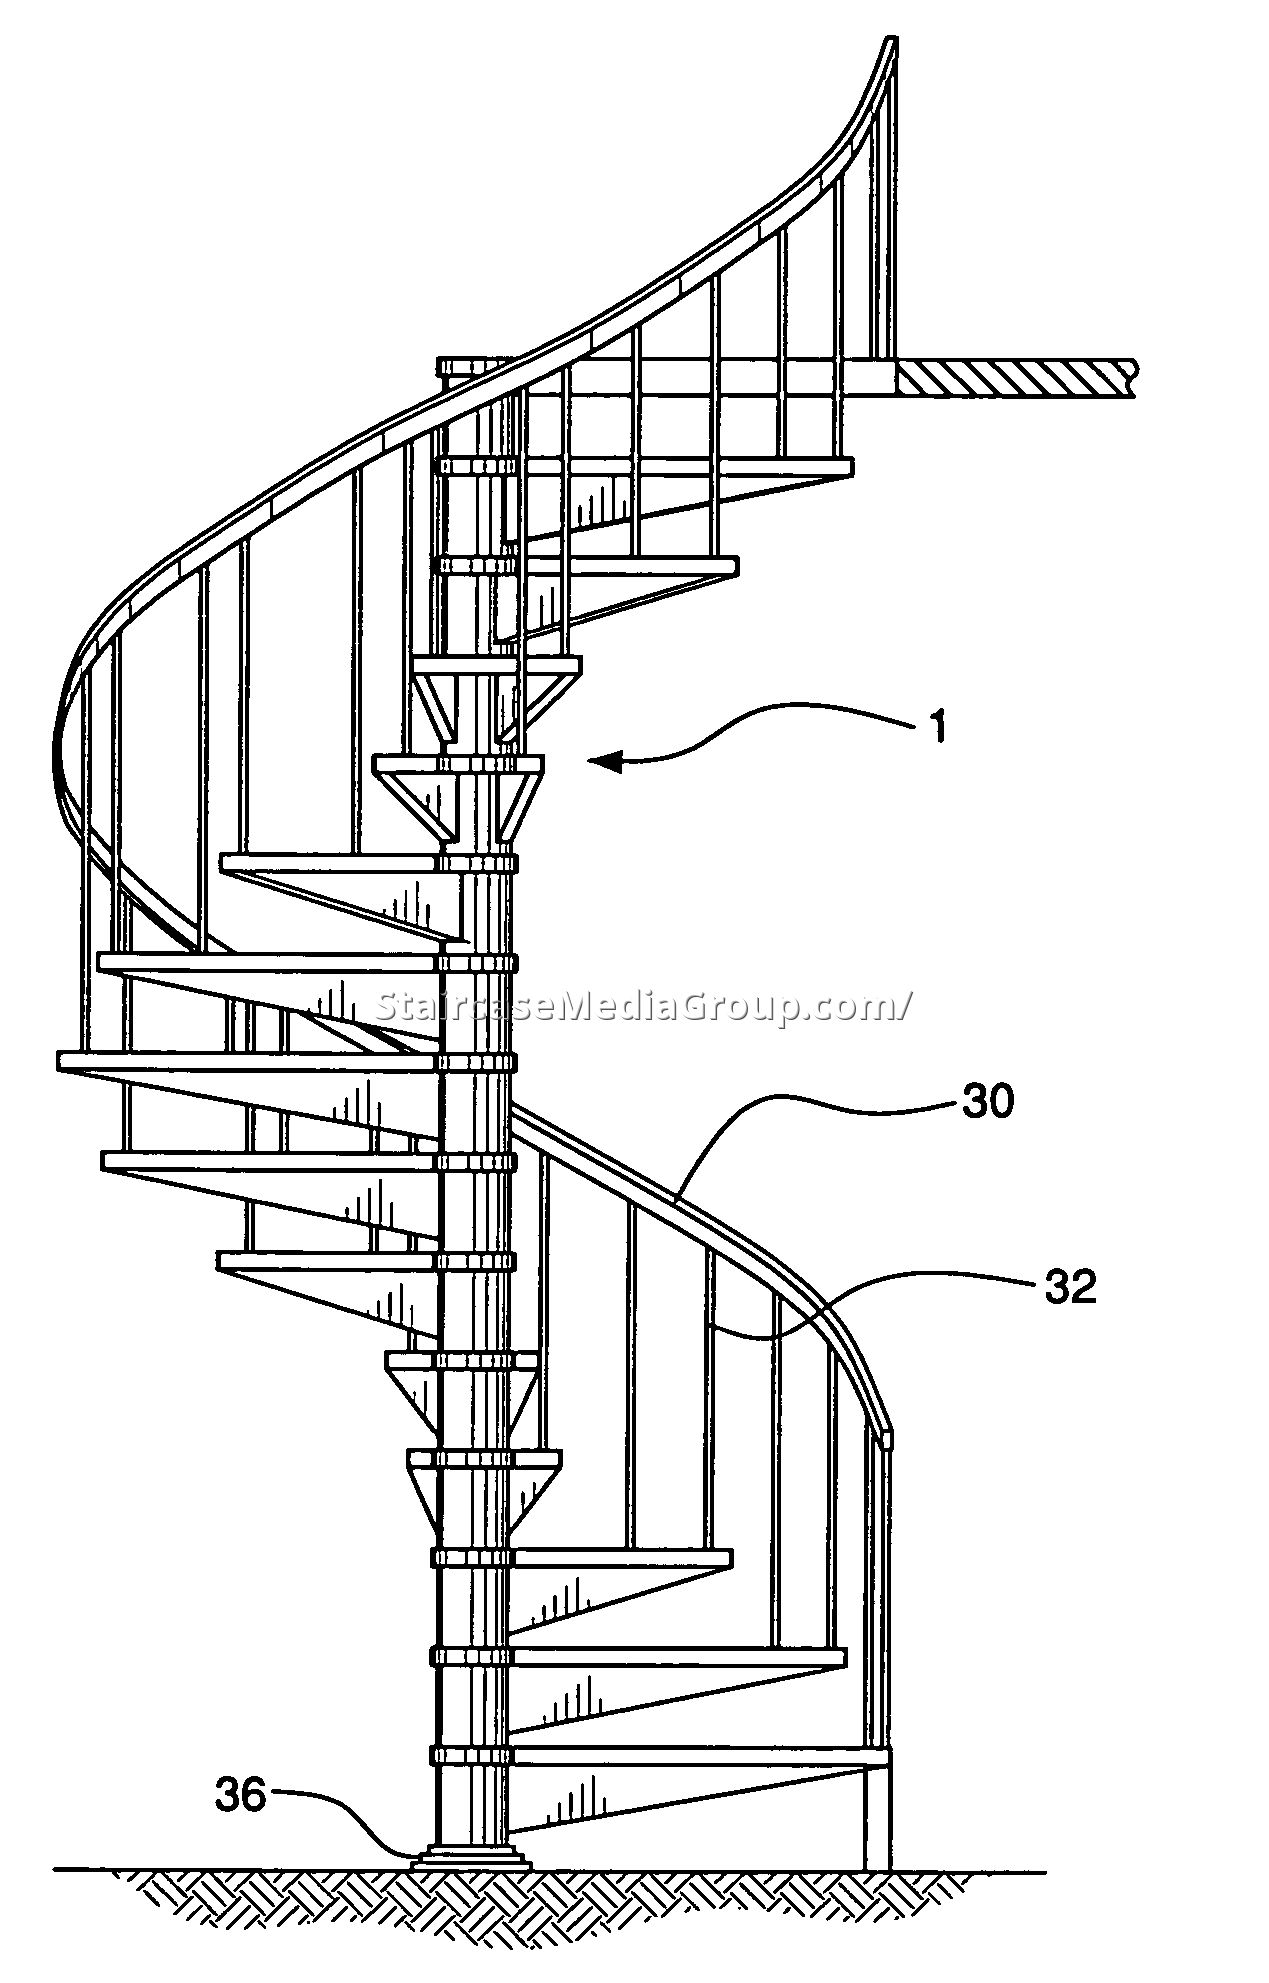 Drawn stairs curved staircase Best Drawing Spiral Staircase Spiral